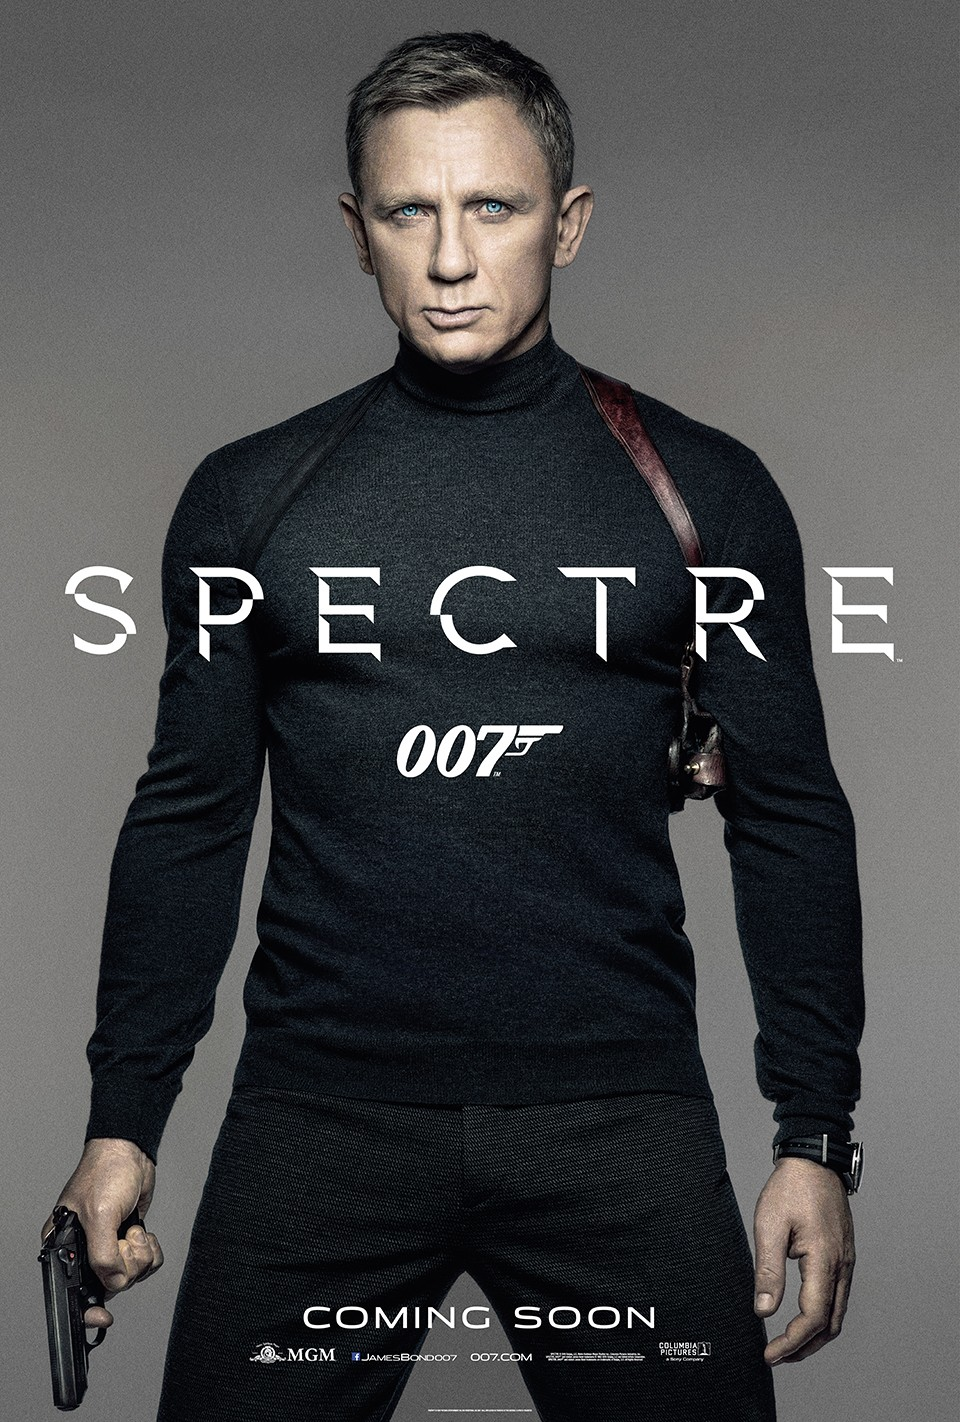 WHY IS THIS SO BORING?! This is James Bond, and he's just standing stonefaced in front of an unbelievably gray background. The only exciting thing happening here is that he's holding a gun which is safely pointed down where it couldn't possibly shoot any bad guys. THIS POSTER IS BULLSHIT.